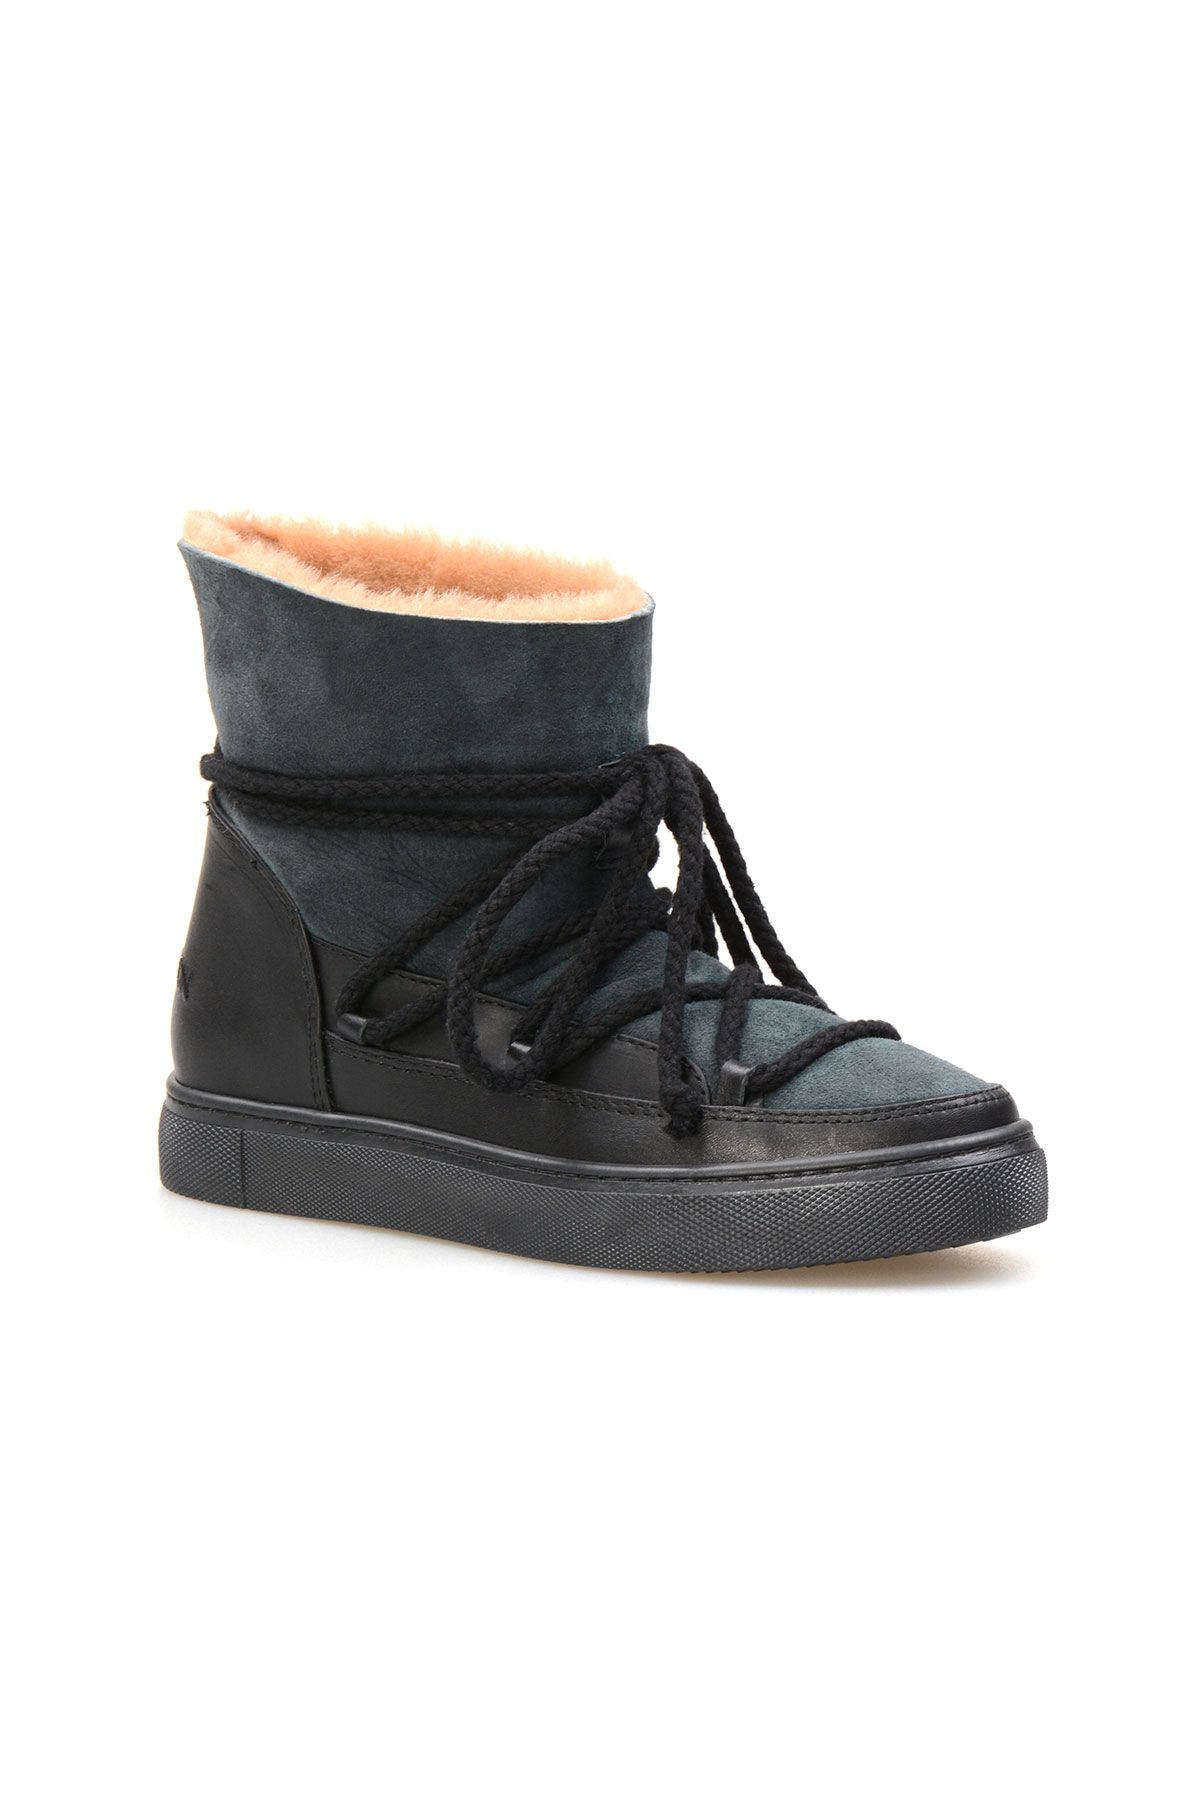 Cool Moon Genuine Suede Shearling Lined Women's Sneaker 355050 Mint